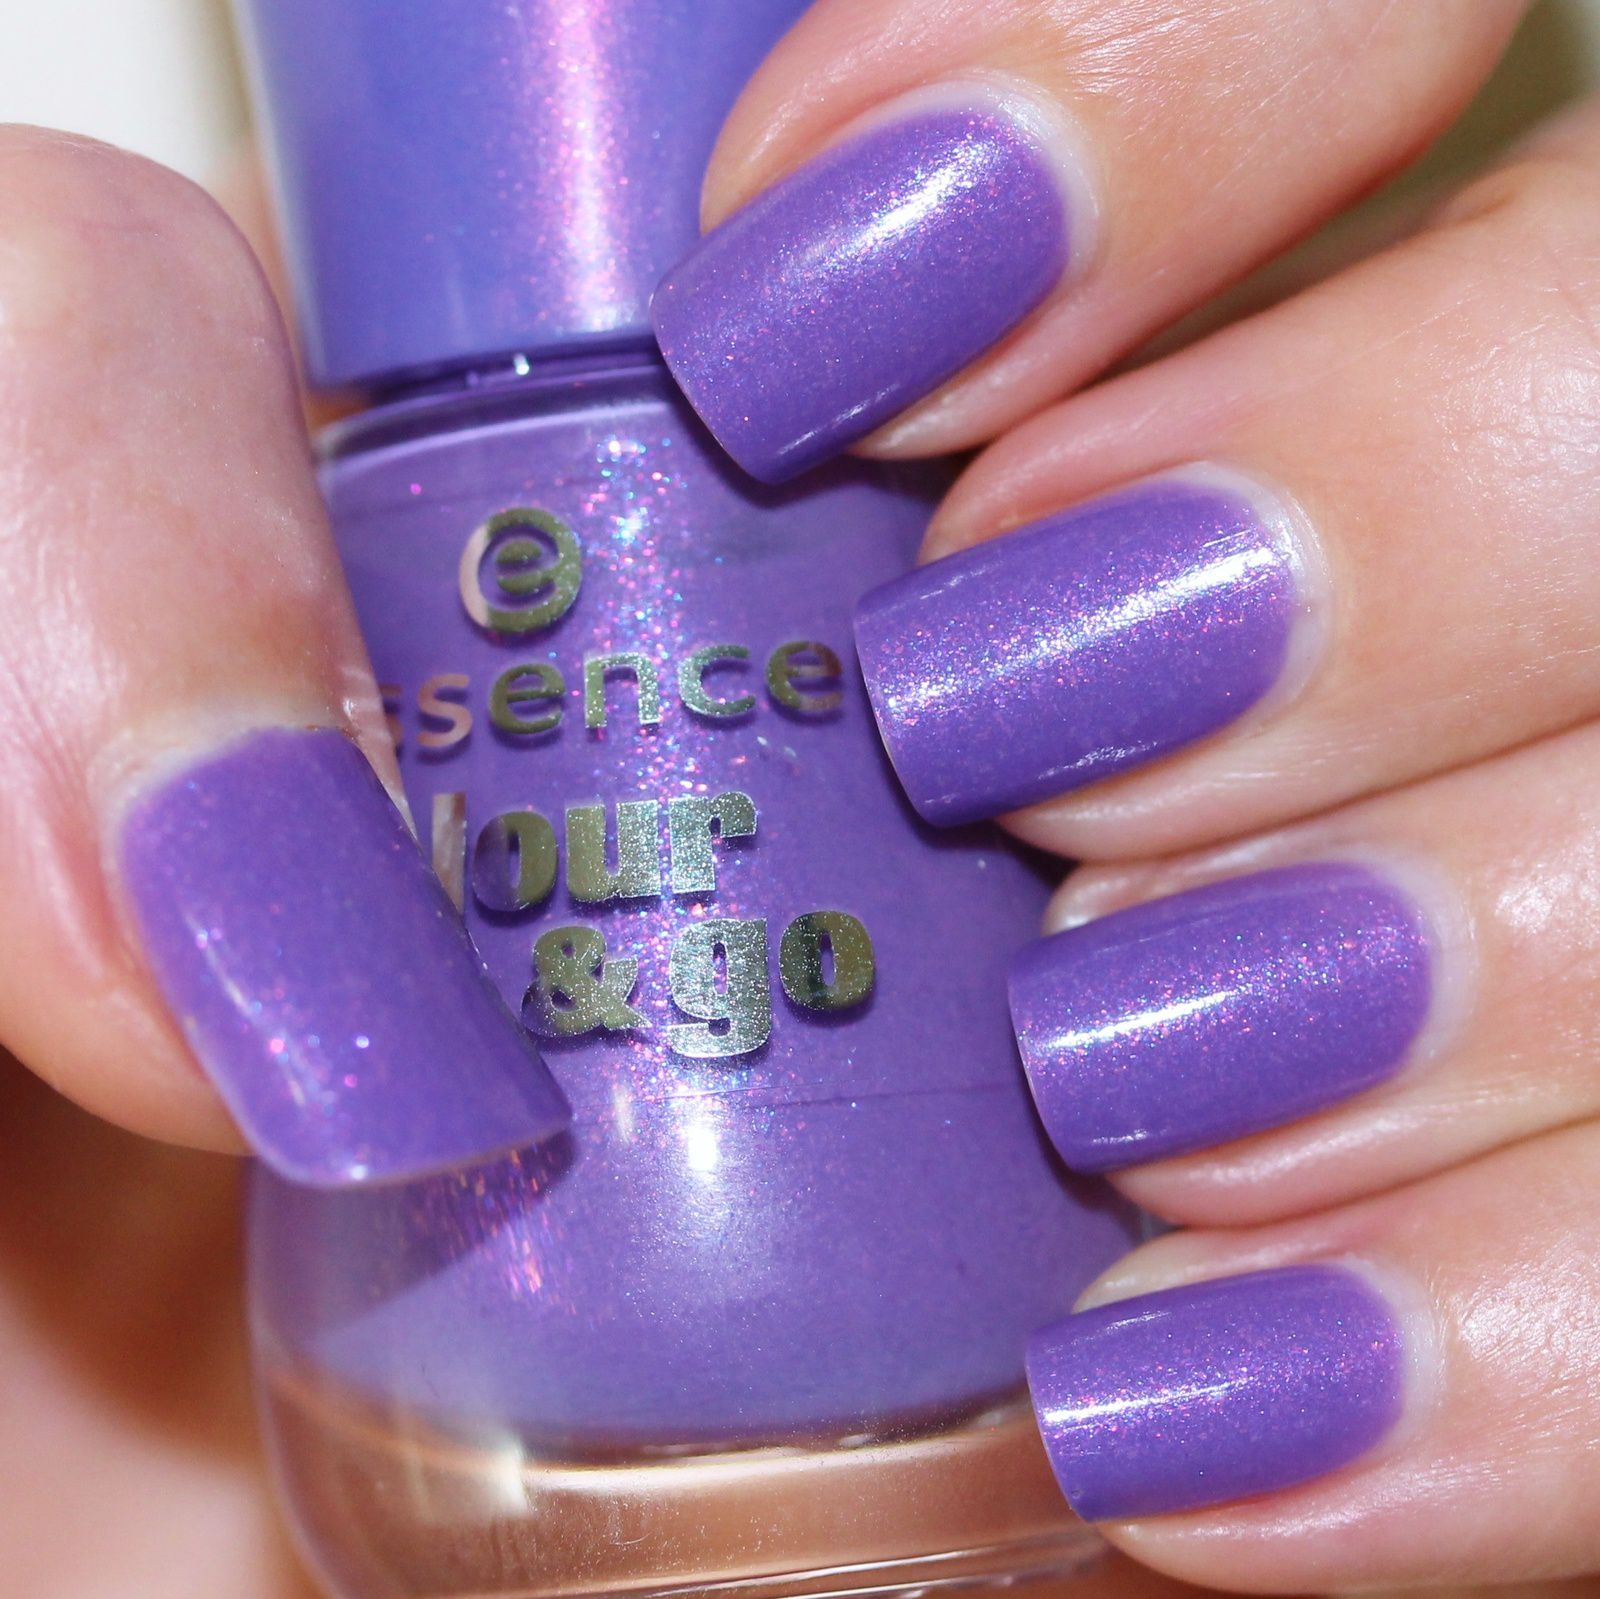 Essie Protein Base Coat / Essence Oh My Glitter! / OutTheDoor Top Coat